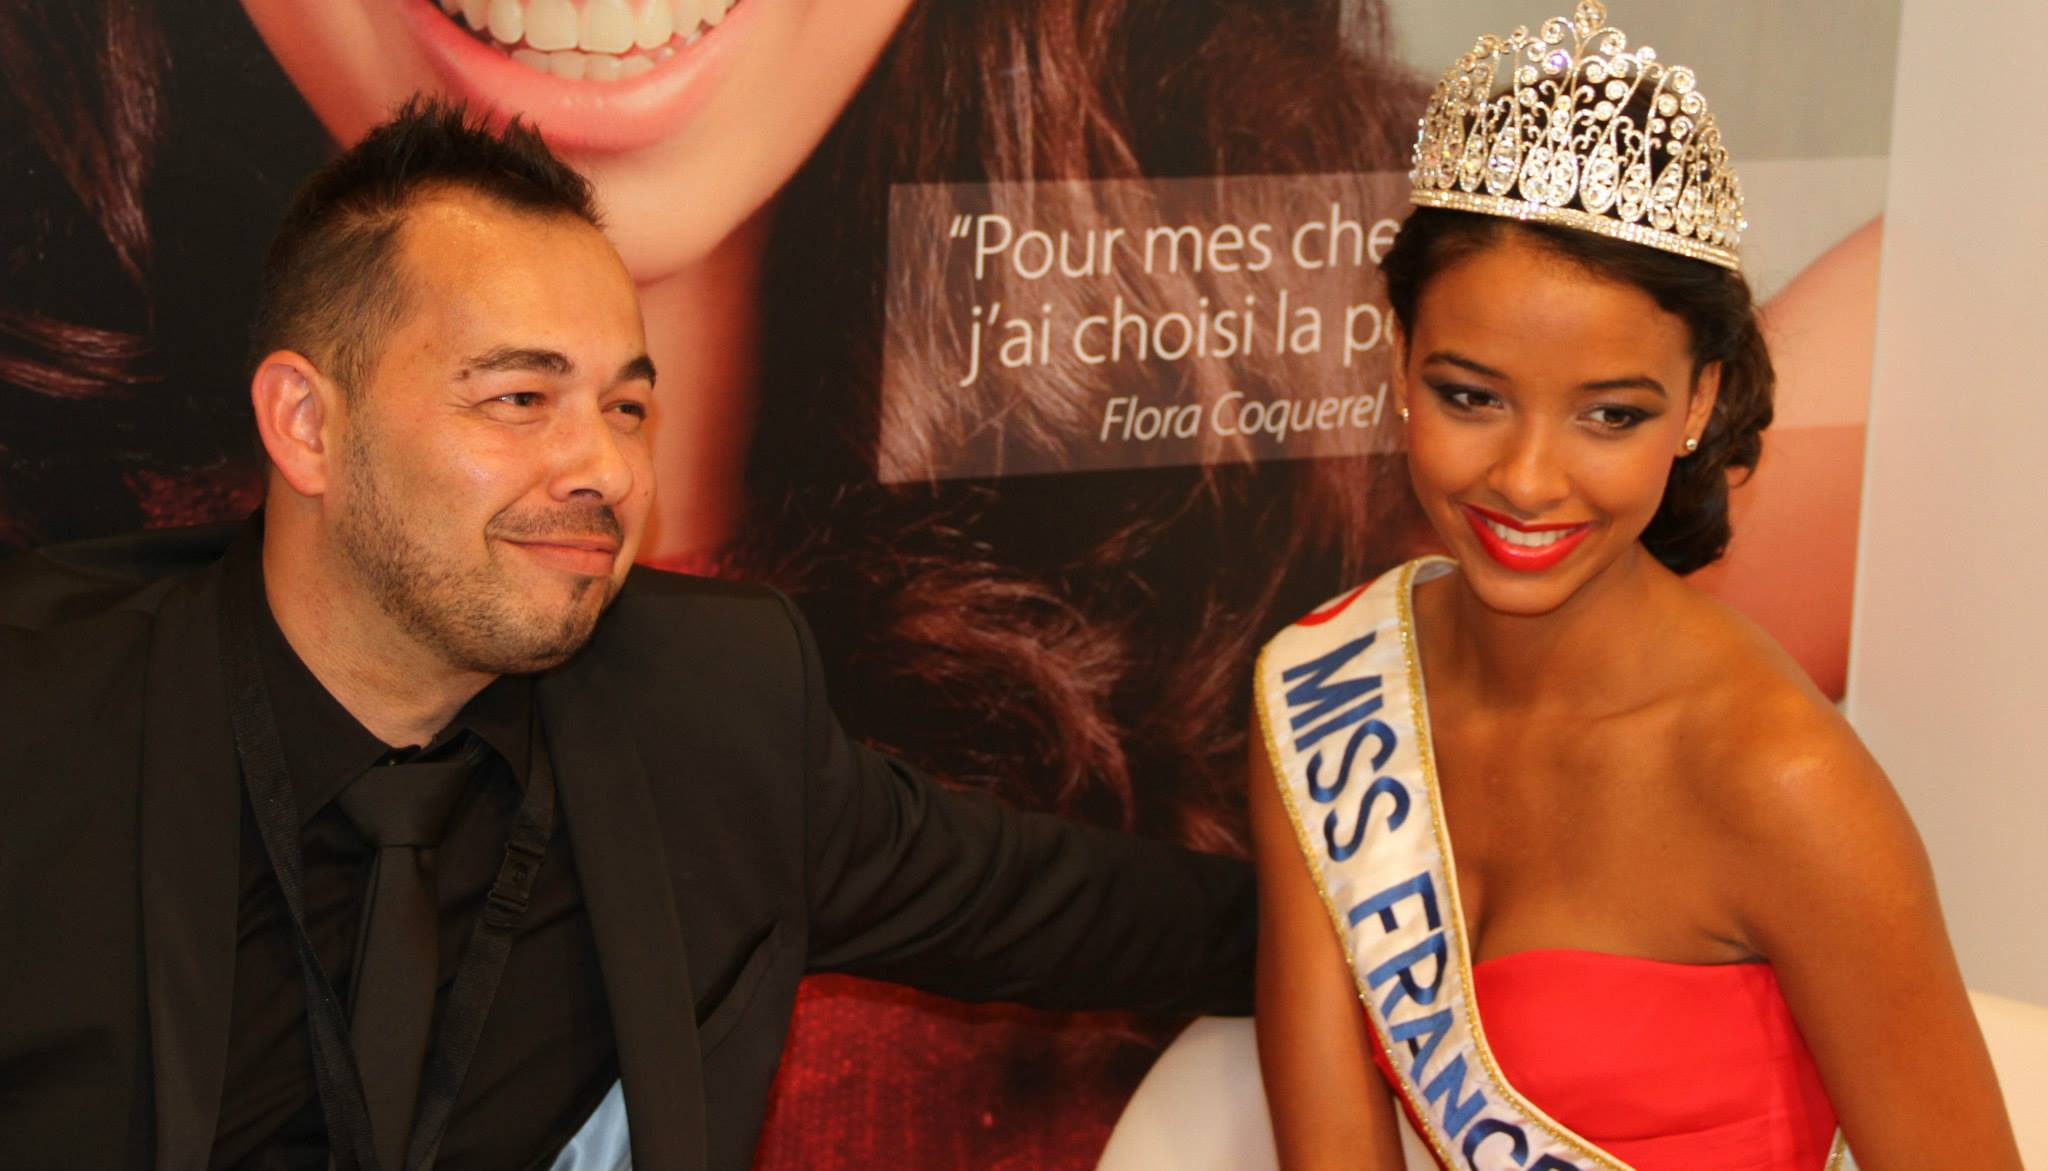 Interview avec Flora Coquerel (Miss France 2014)